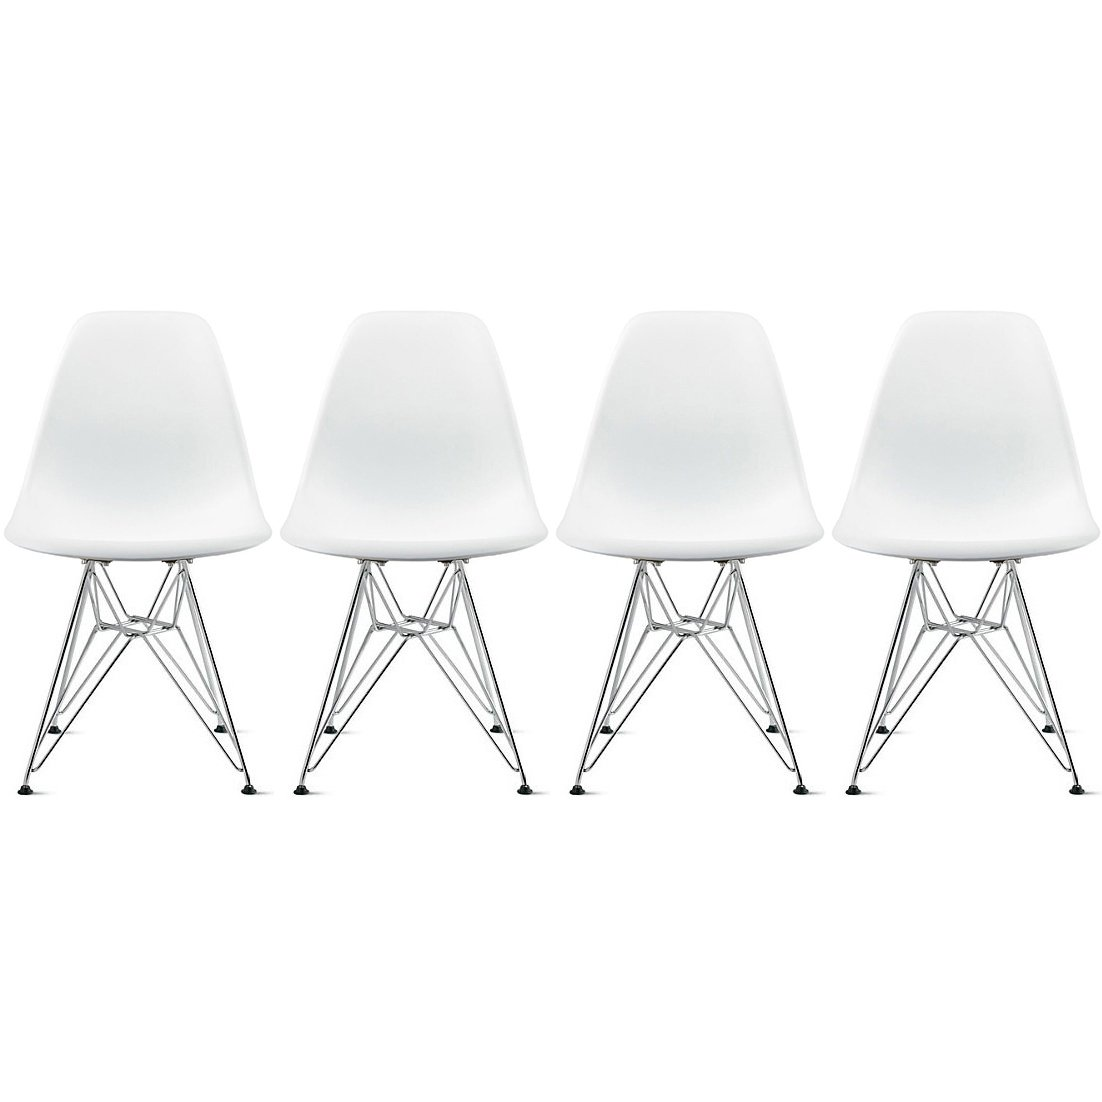 2xhome Set of Four 4 – Plastic Side Chair Chromed Wire Legs Eiffel Legs Dining Room Chair – Lounge Chair No Arm Arms Armless Less Chairs Seats Wire Leg White